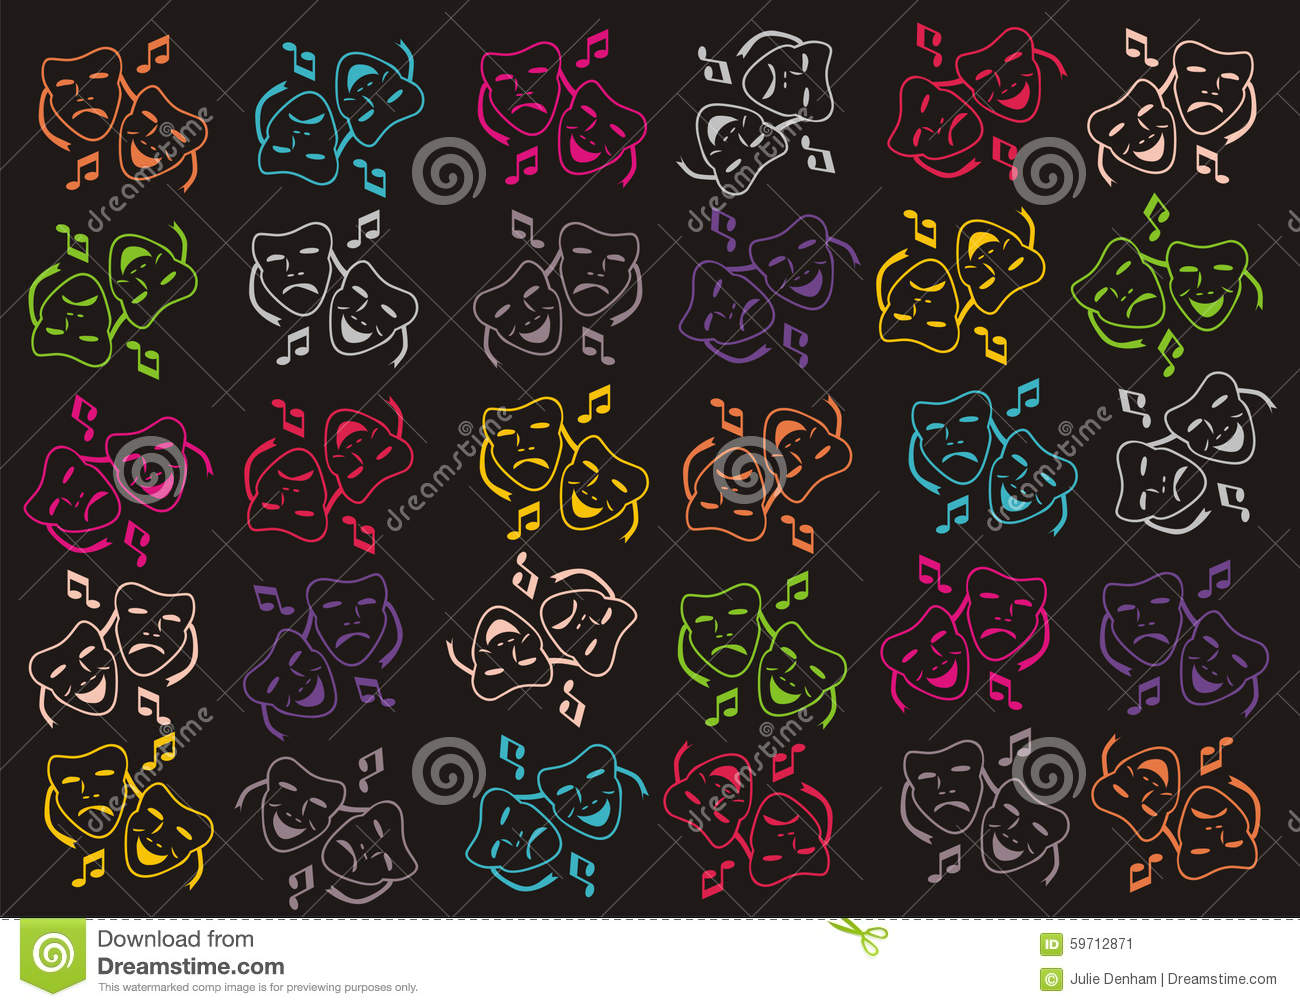 Popular Wallpaper Music Bright - drama-theatre-music-wallpaper-background-abstract-pattern-notes-theatrical-face-masks-eye-catching-bright-colours-59712871  Gallery_483479.jpg